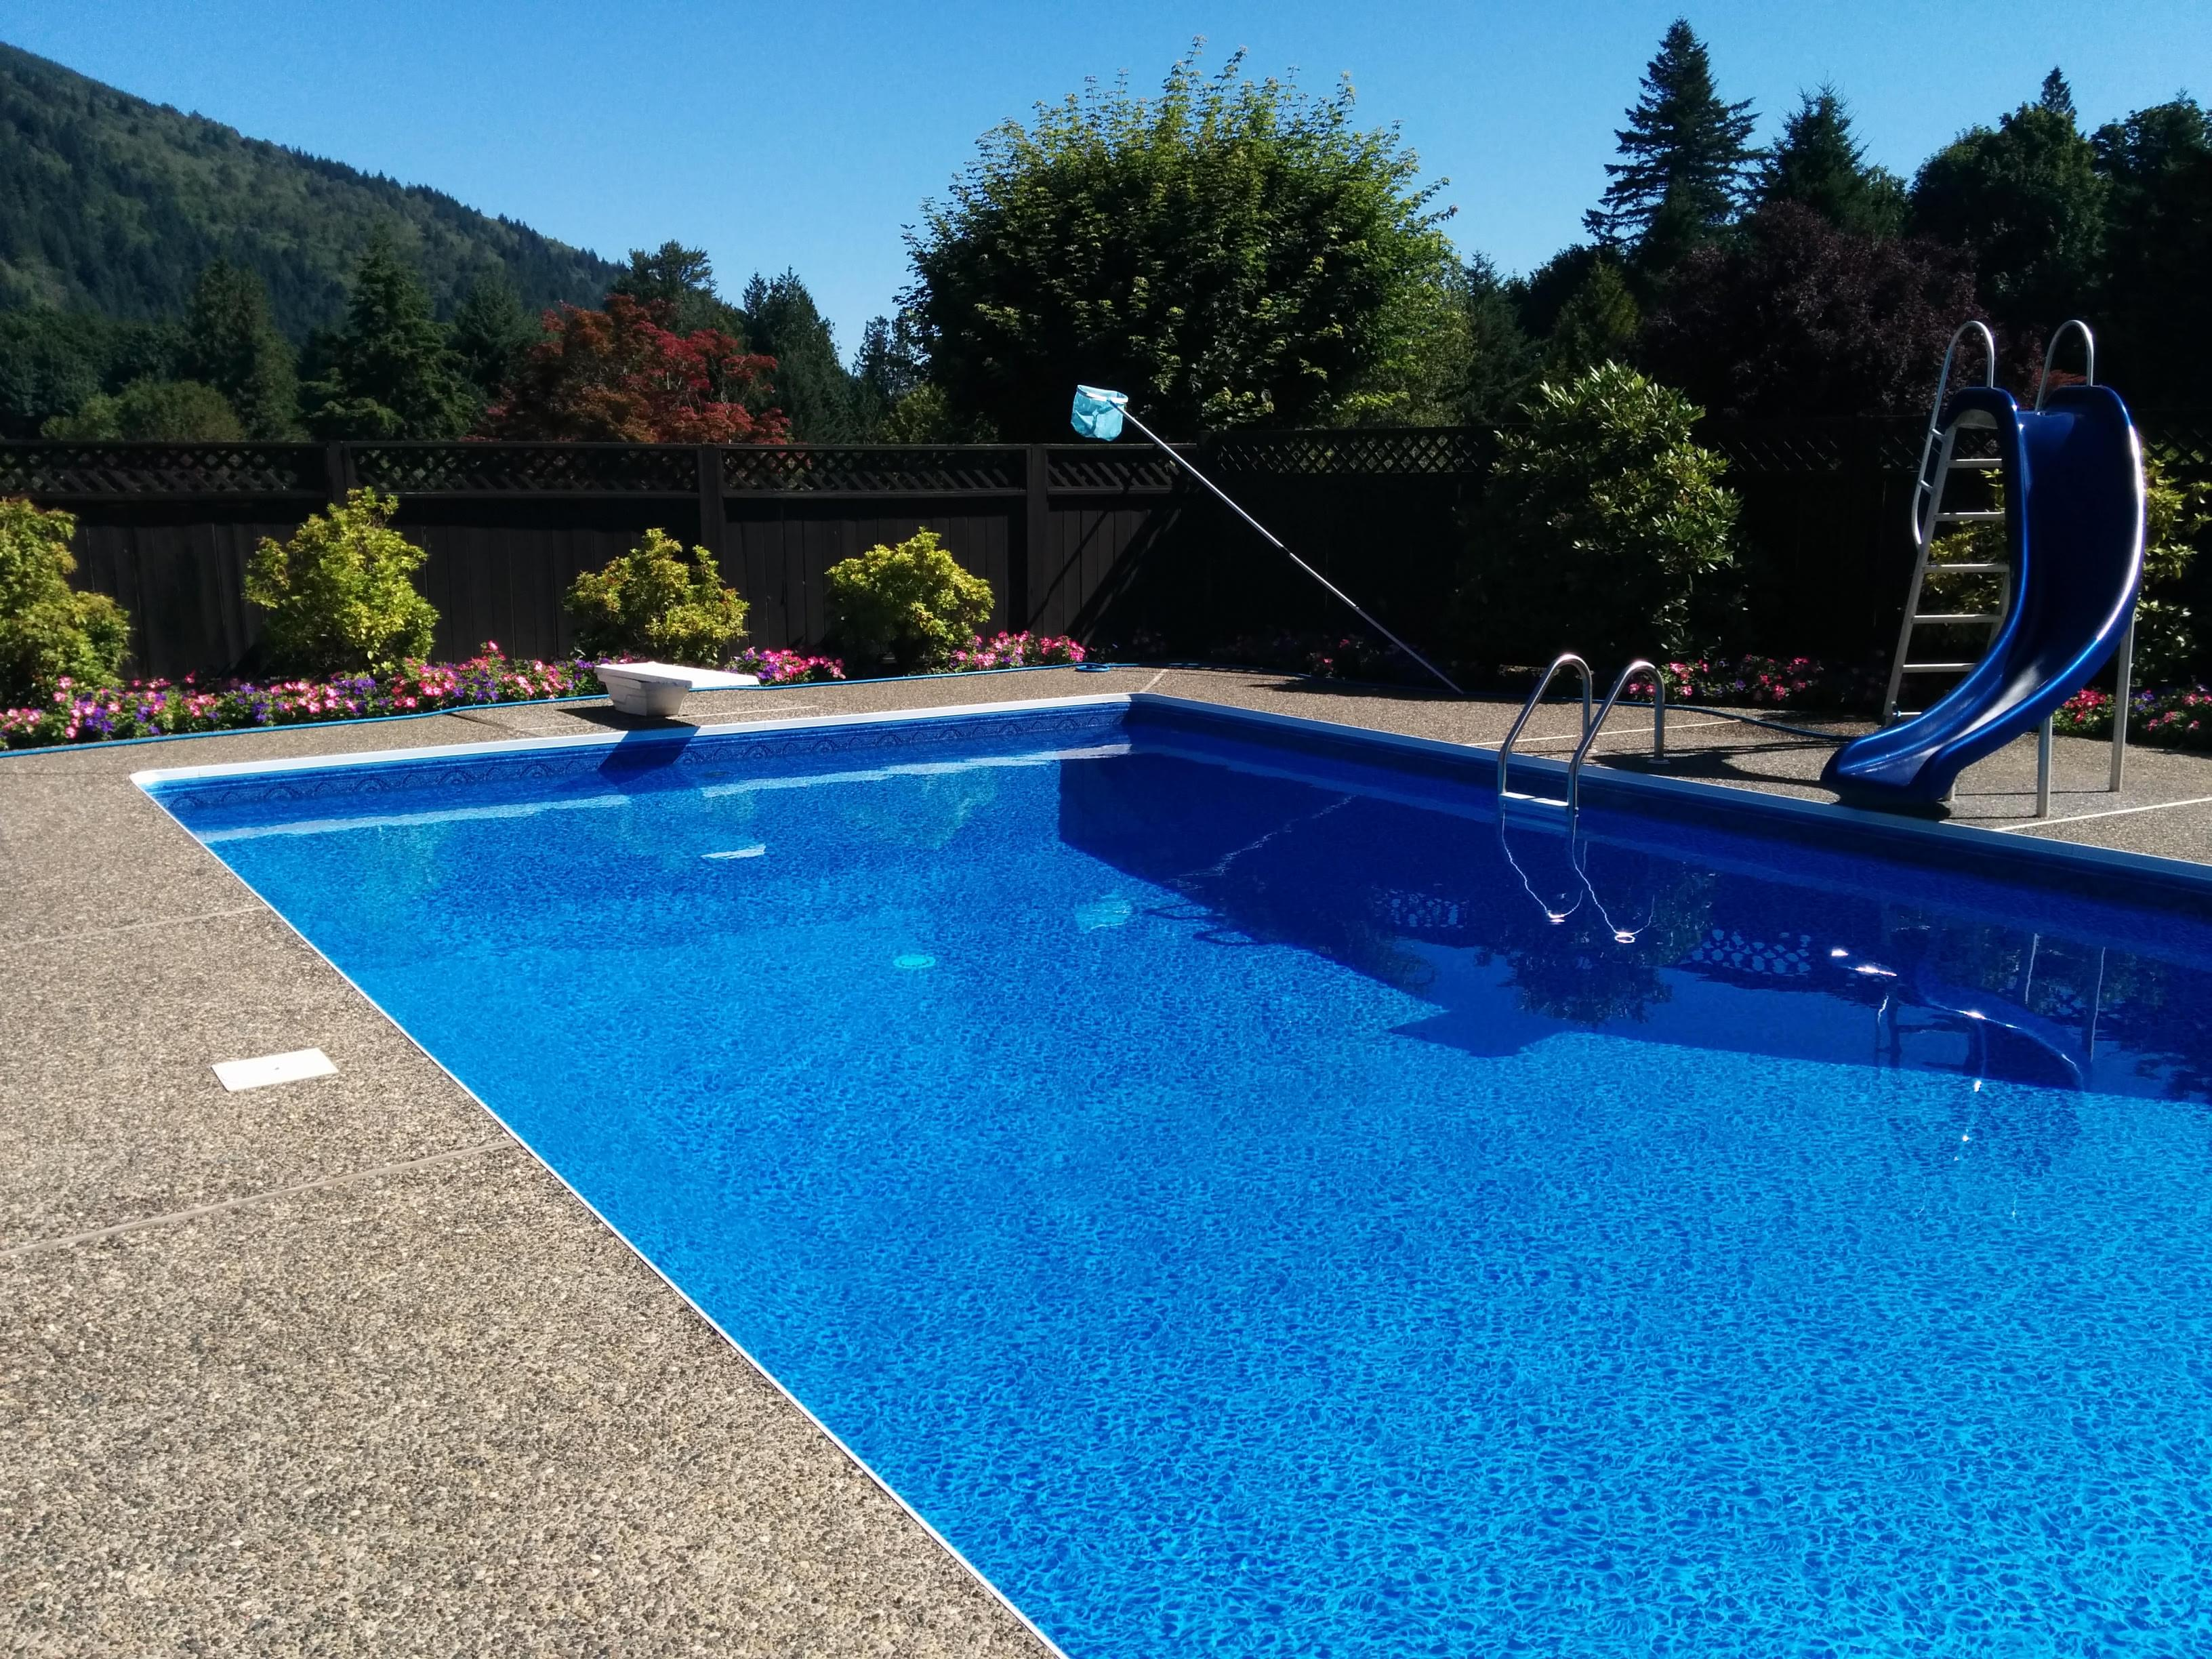 Inground pool pics how much does an inground pool cost for In ground pool companies